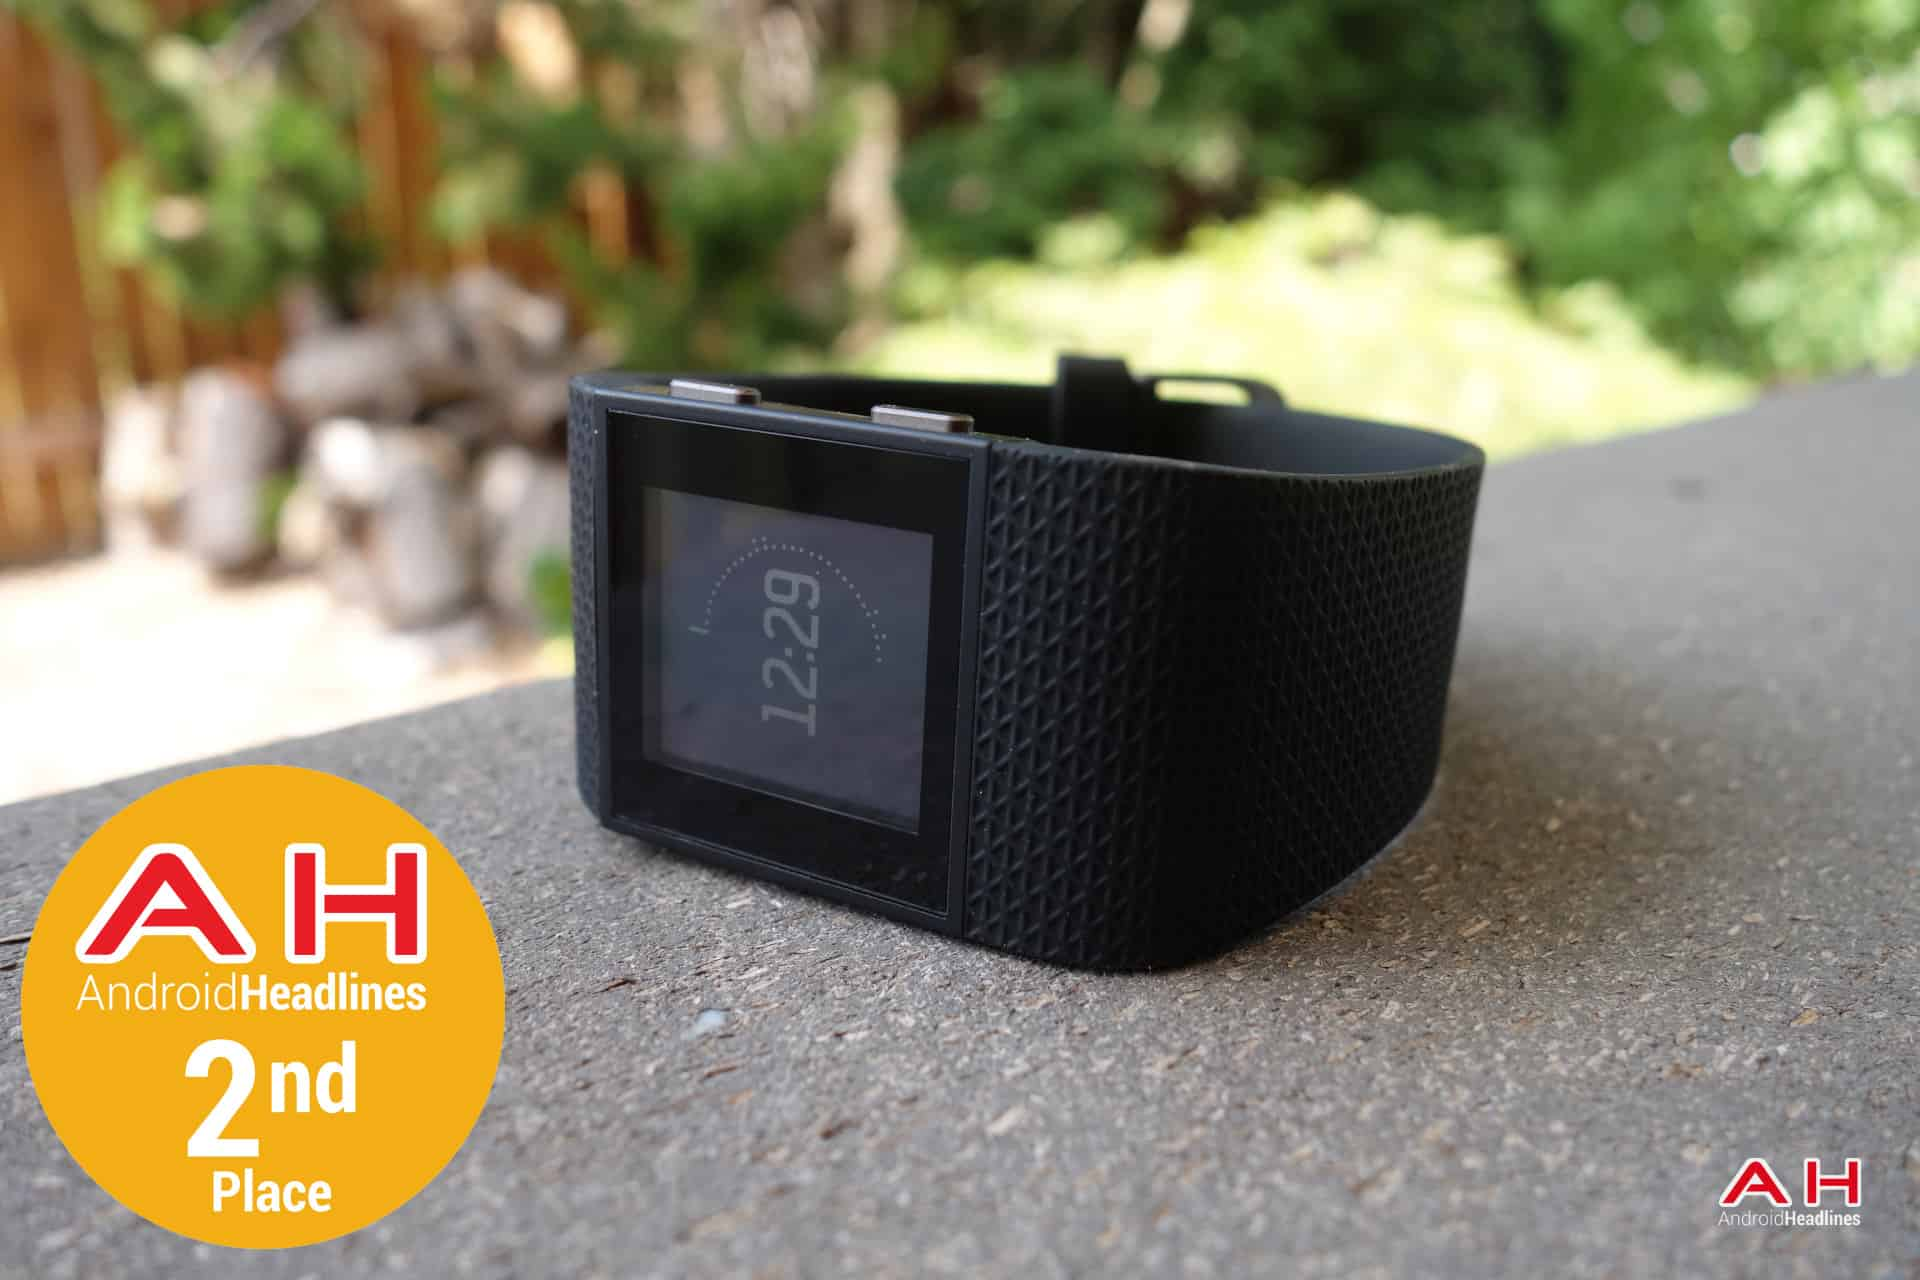 AH Awards Best Fitness Tracker 2015-2